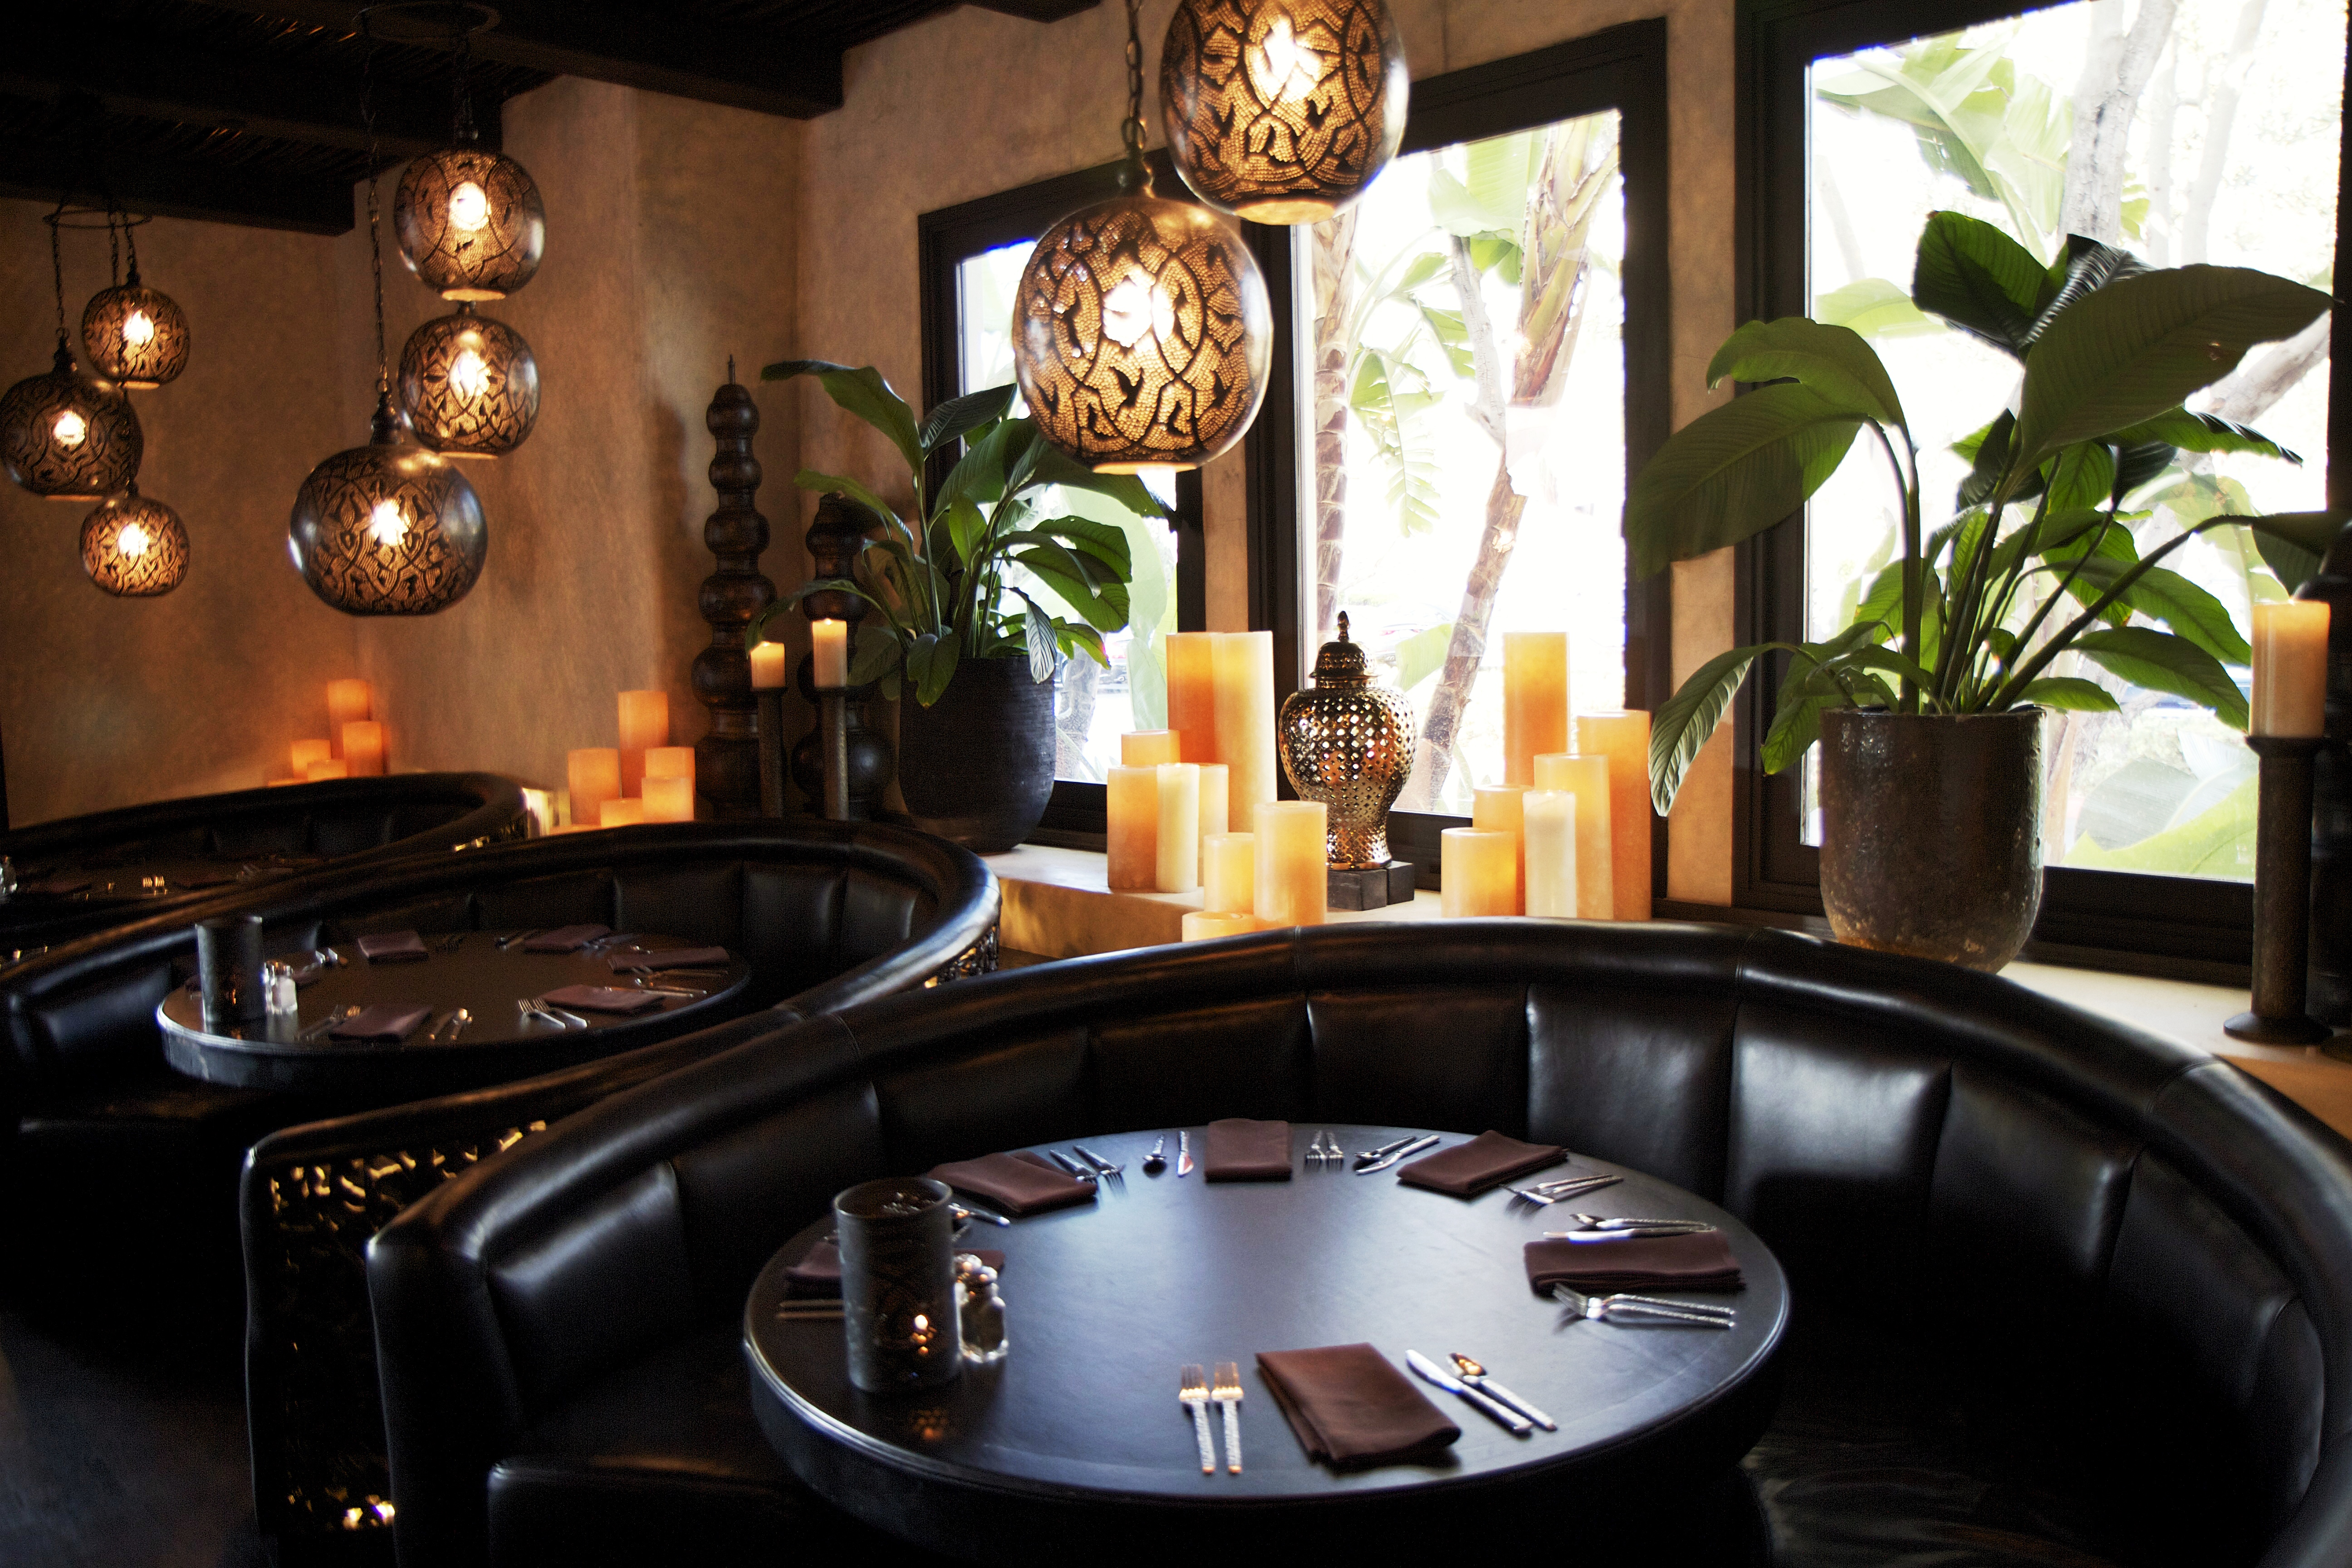 Dining At Javiers In Crystal Cove Is A Must When Visiting Orange County Not Only For The Gourmet Mexican Food But Also Decor And Architecture Are